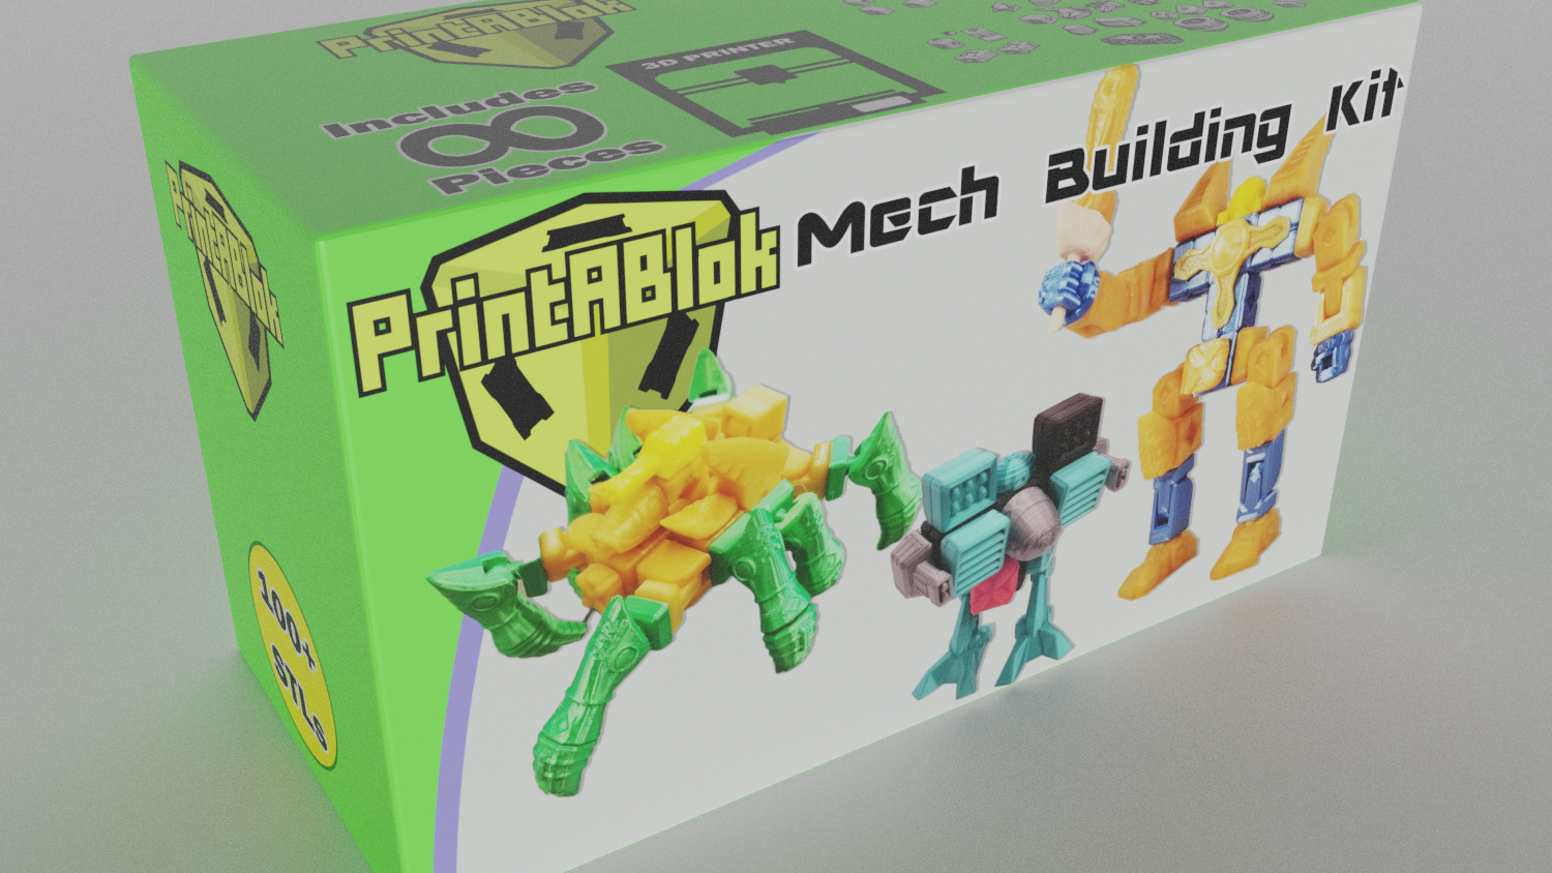 Mech themed modular toy sets for your 3D printer.